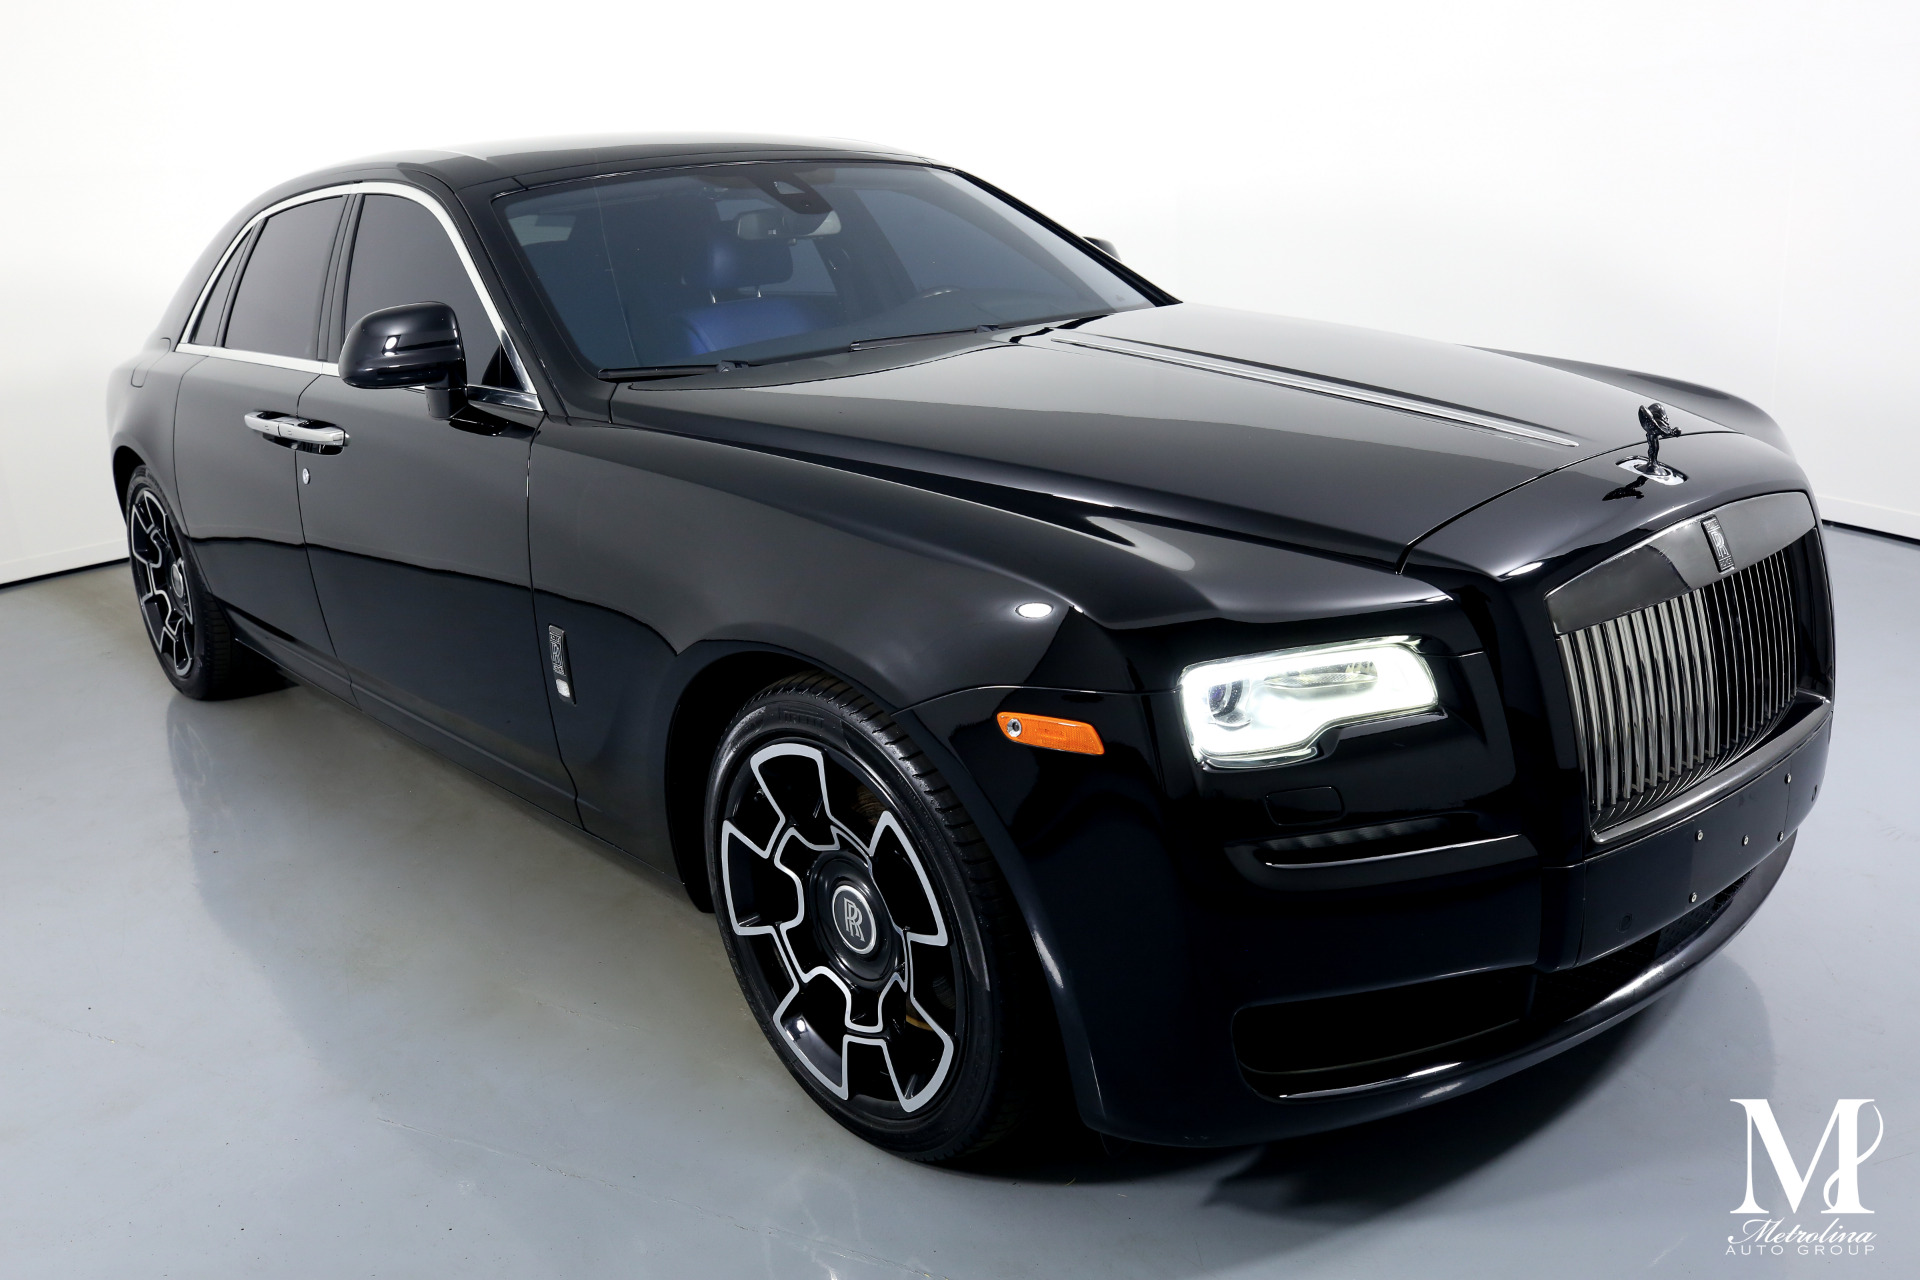 Used 2017 Rolls-Royce Ghost for sale $214,996 at Metrolina Auto Group in Charlotte NC 28217 - 2